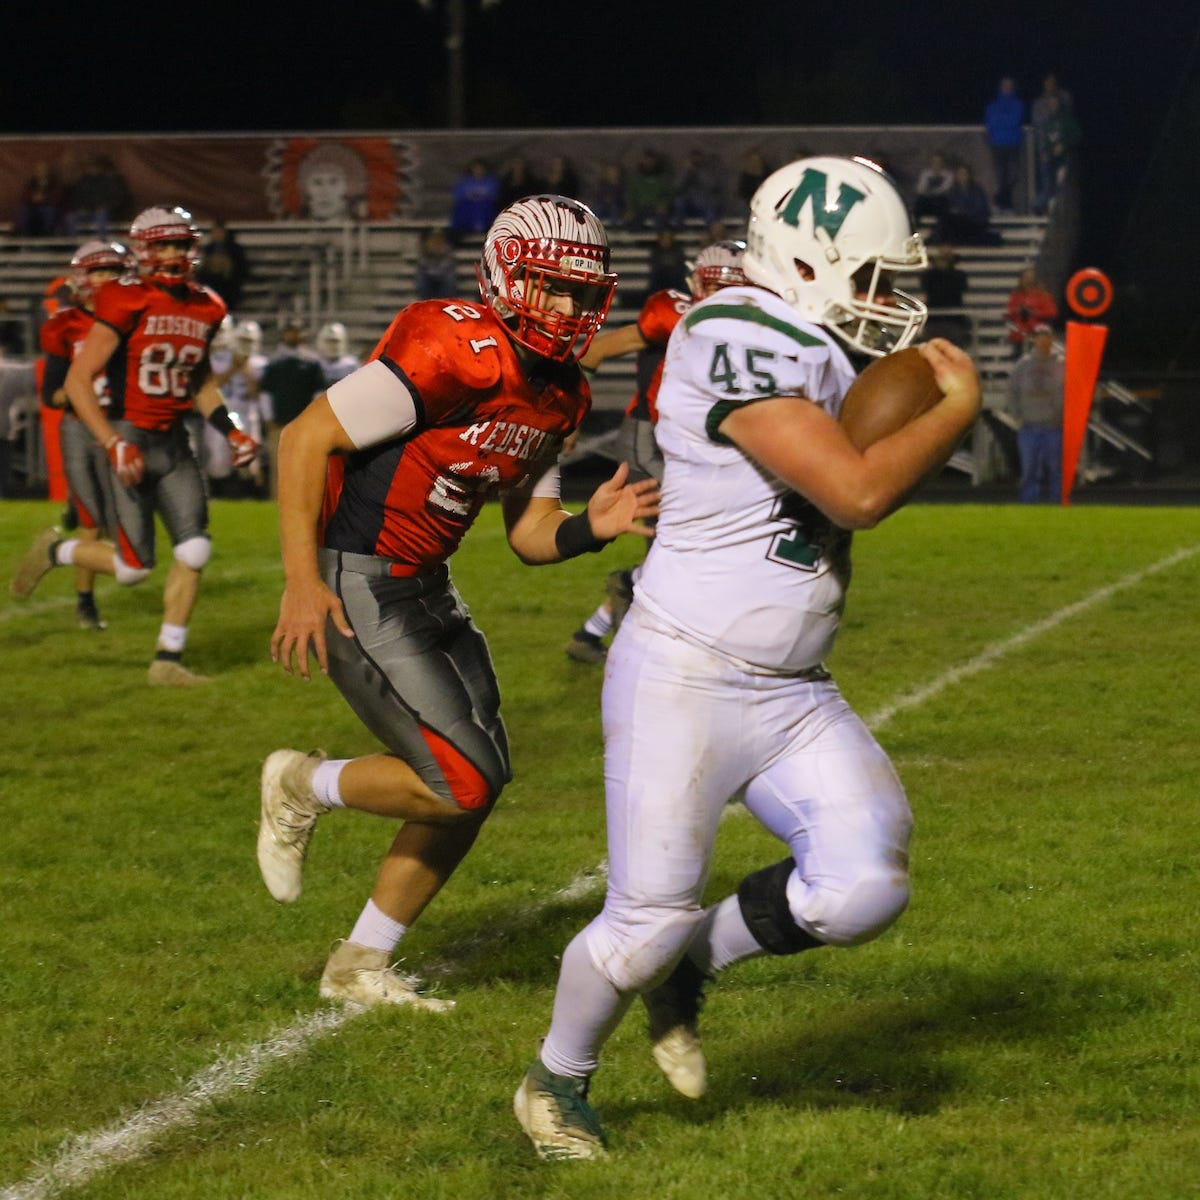 Northridge spoiled Utica's senior night with a 46-27 victory.